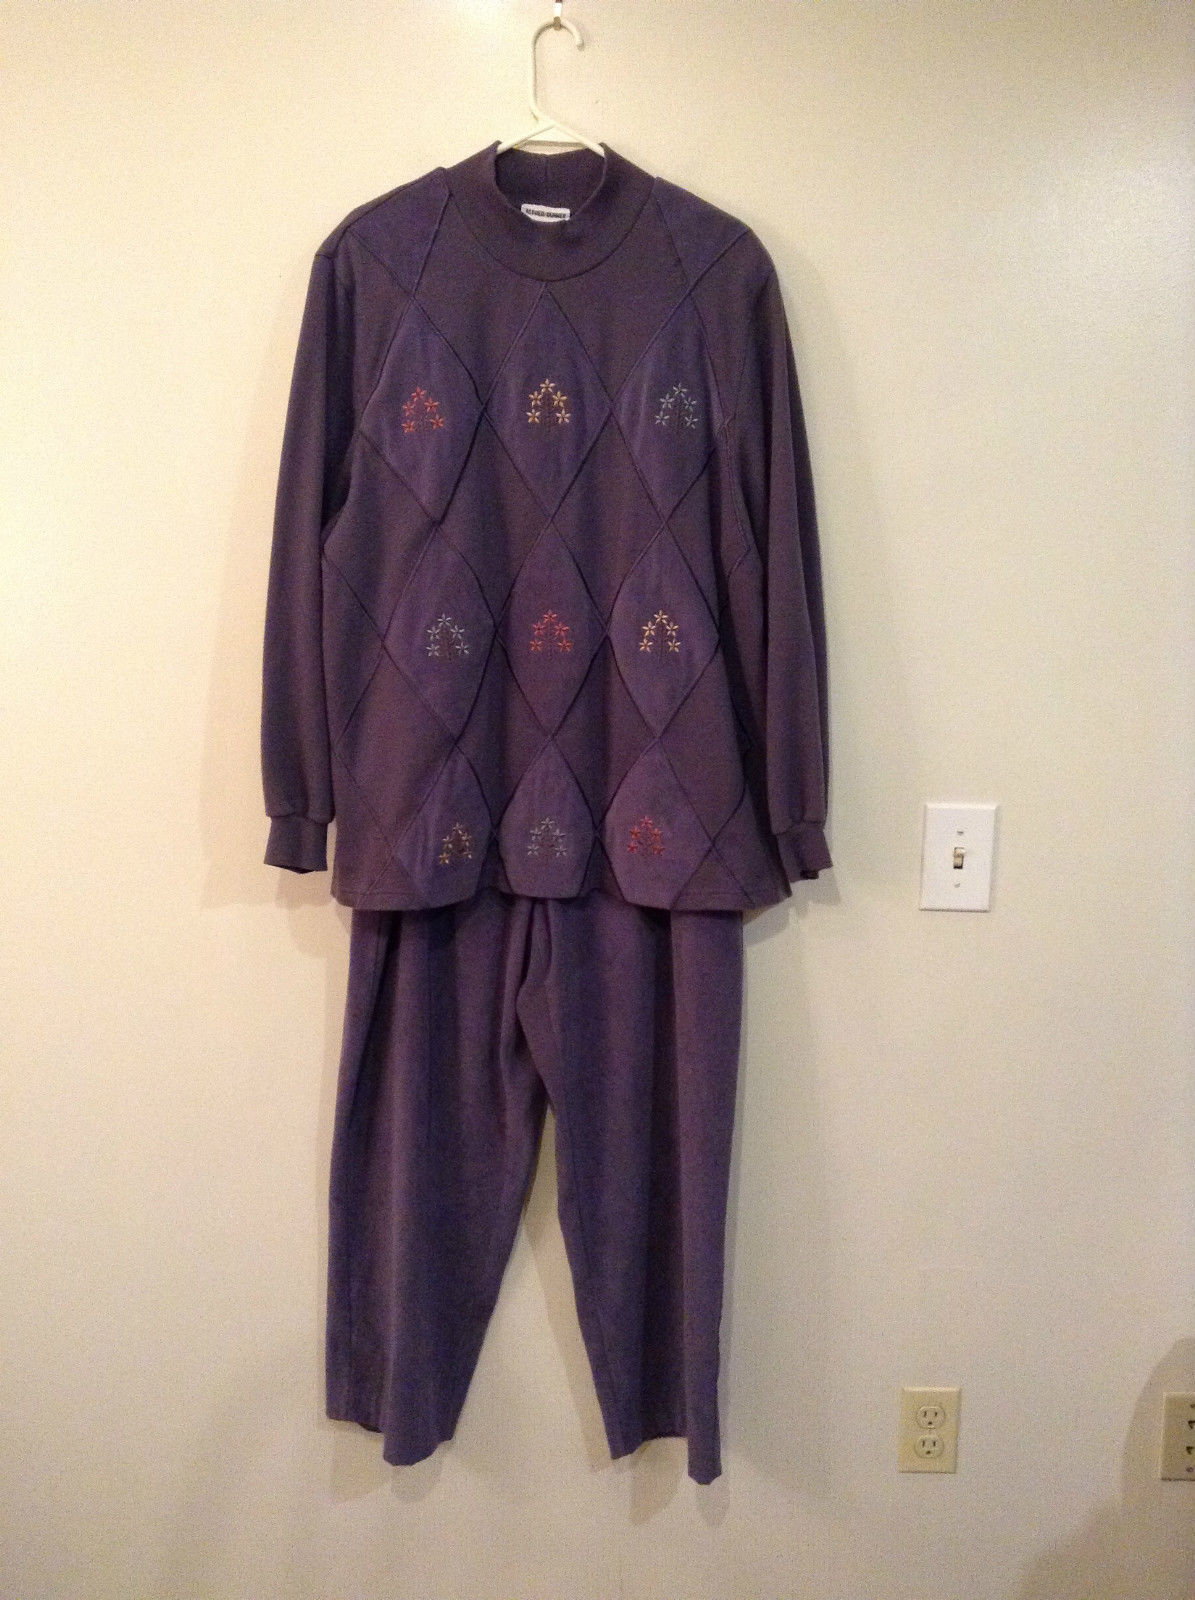 Dark Lavender Sweater and Pant Set Alfred Dunner Sweater Size 2X Pant Size 24W